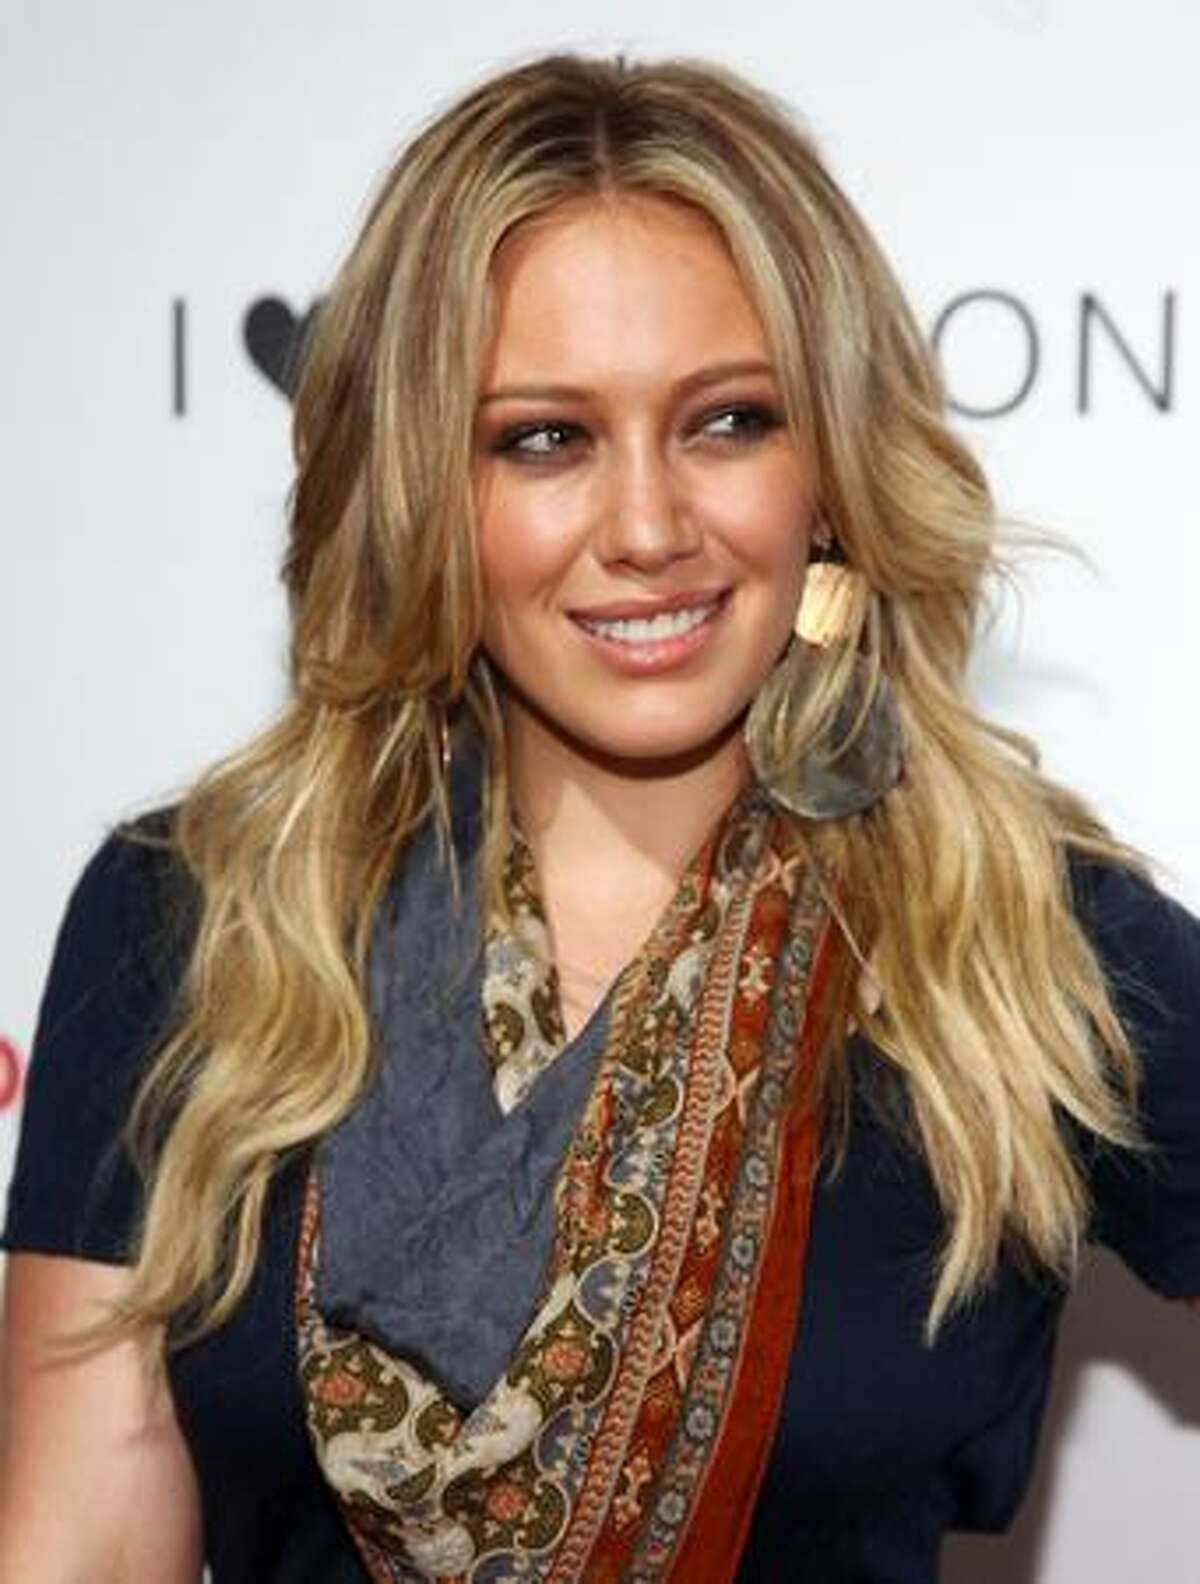 Actress Hilary Duff attends the celebration of the I